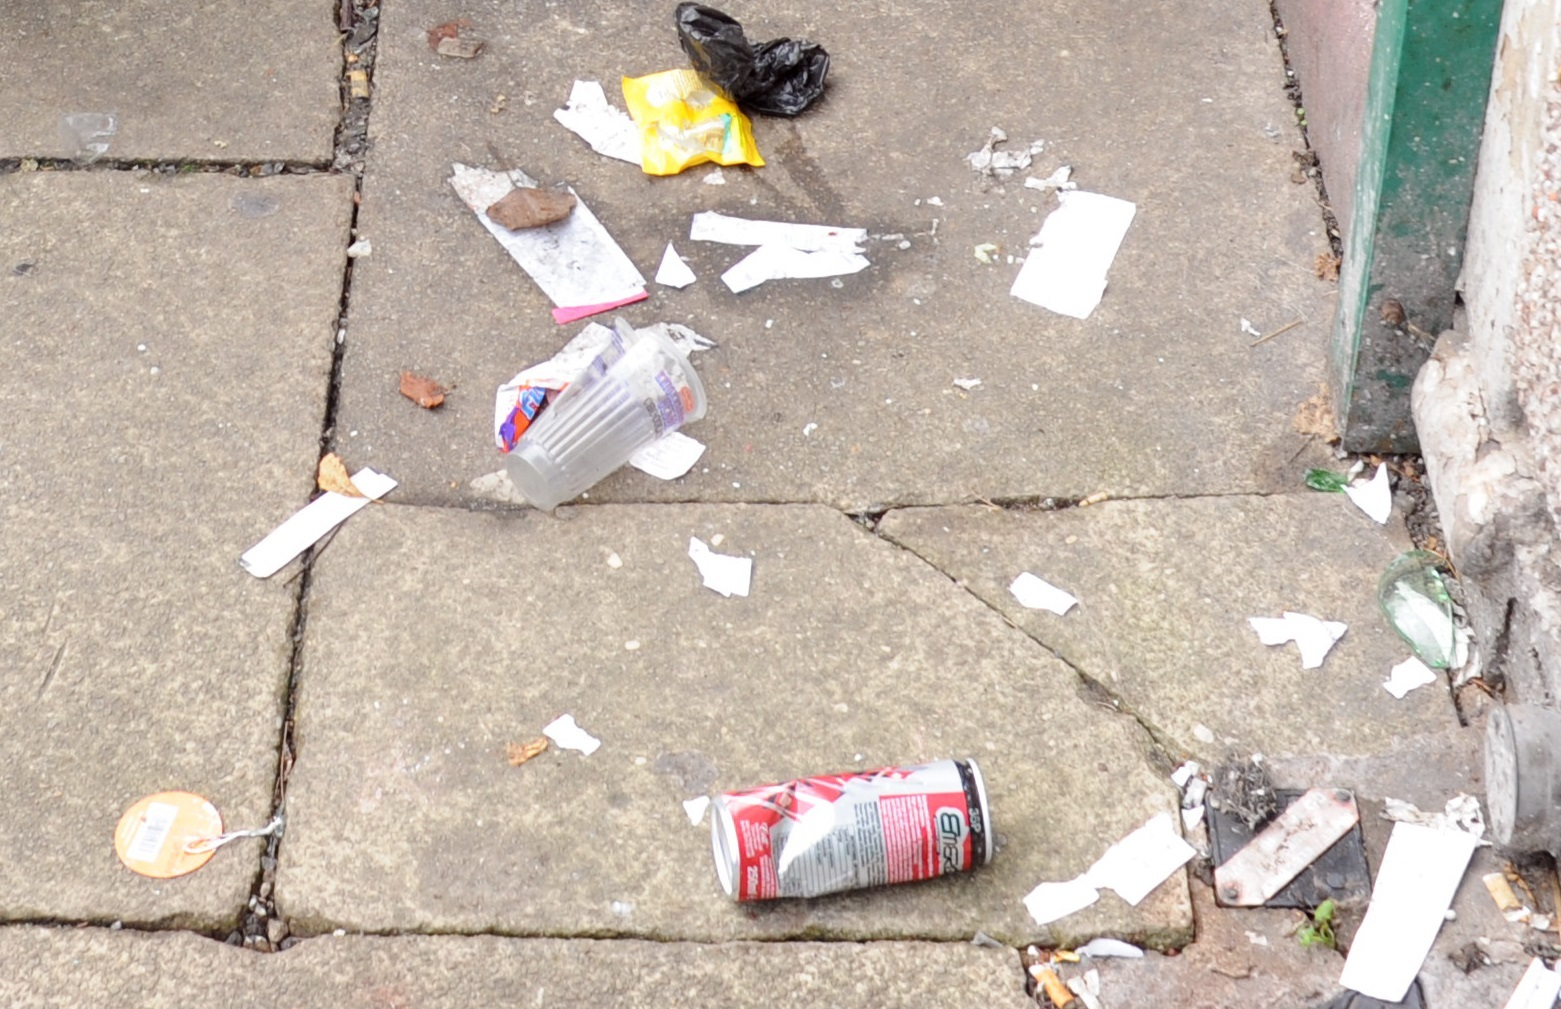 A general image of litter on a street